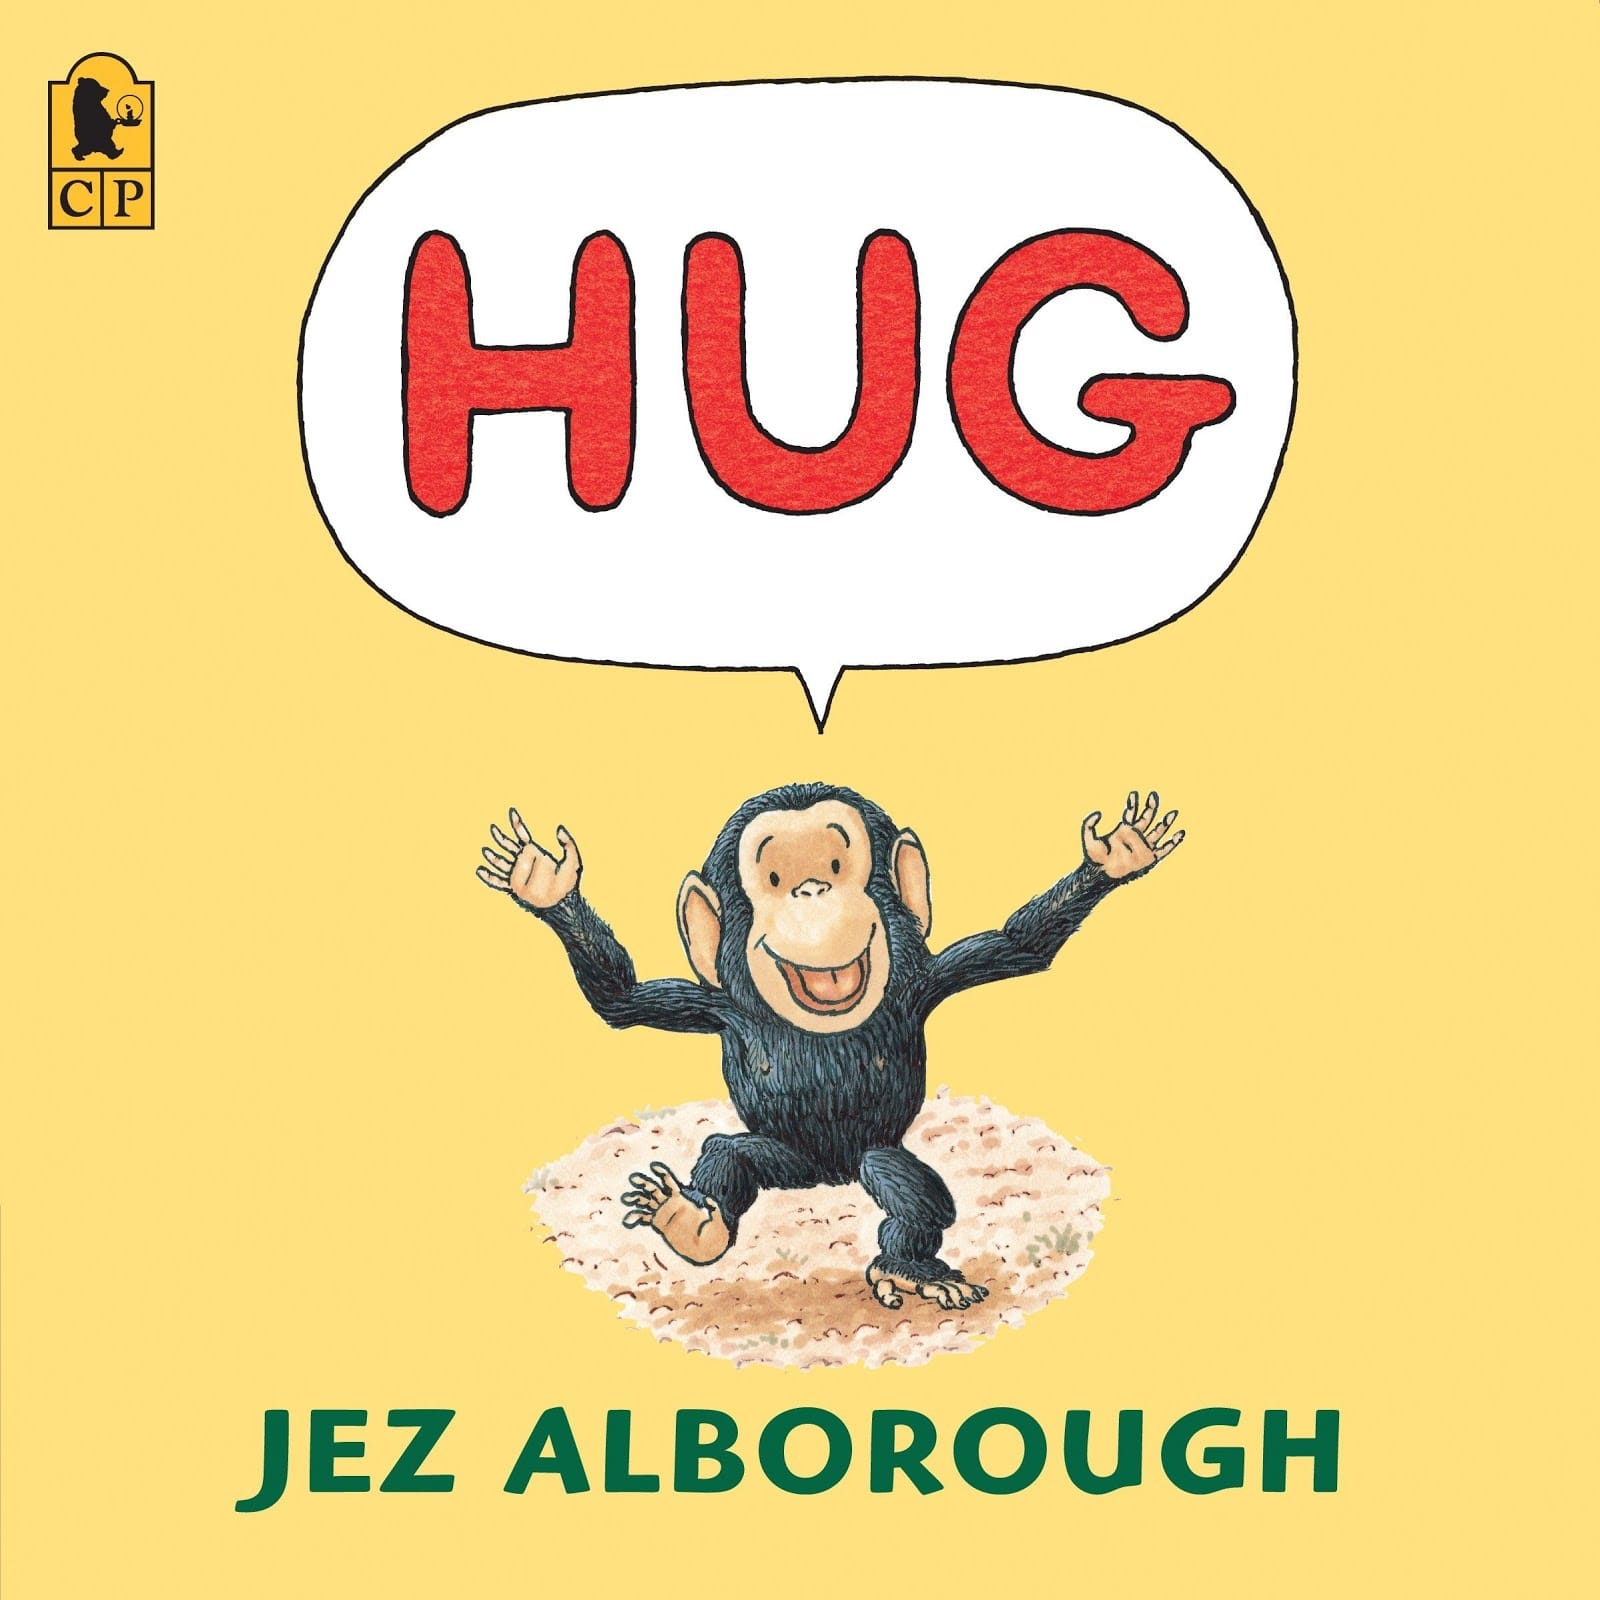 Hug by Jez Alborough as an example of children's book cover design fro kids over 12